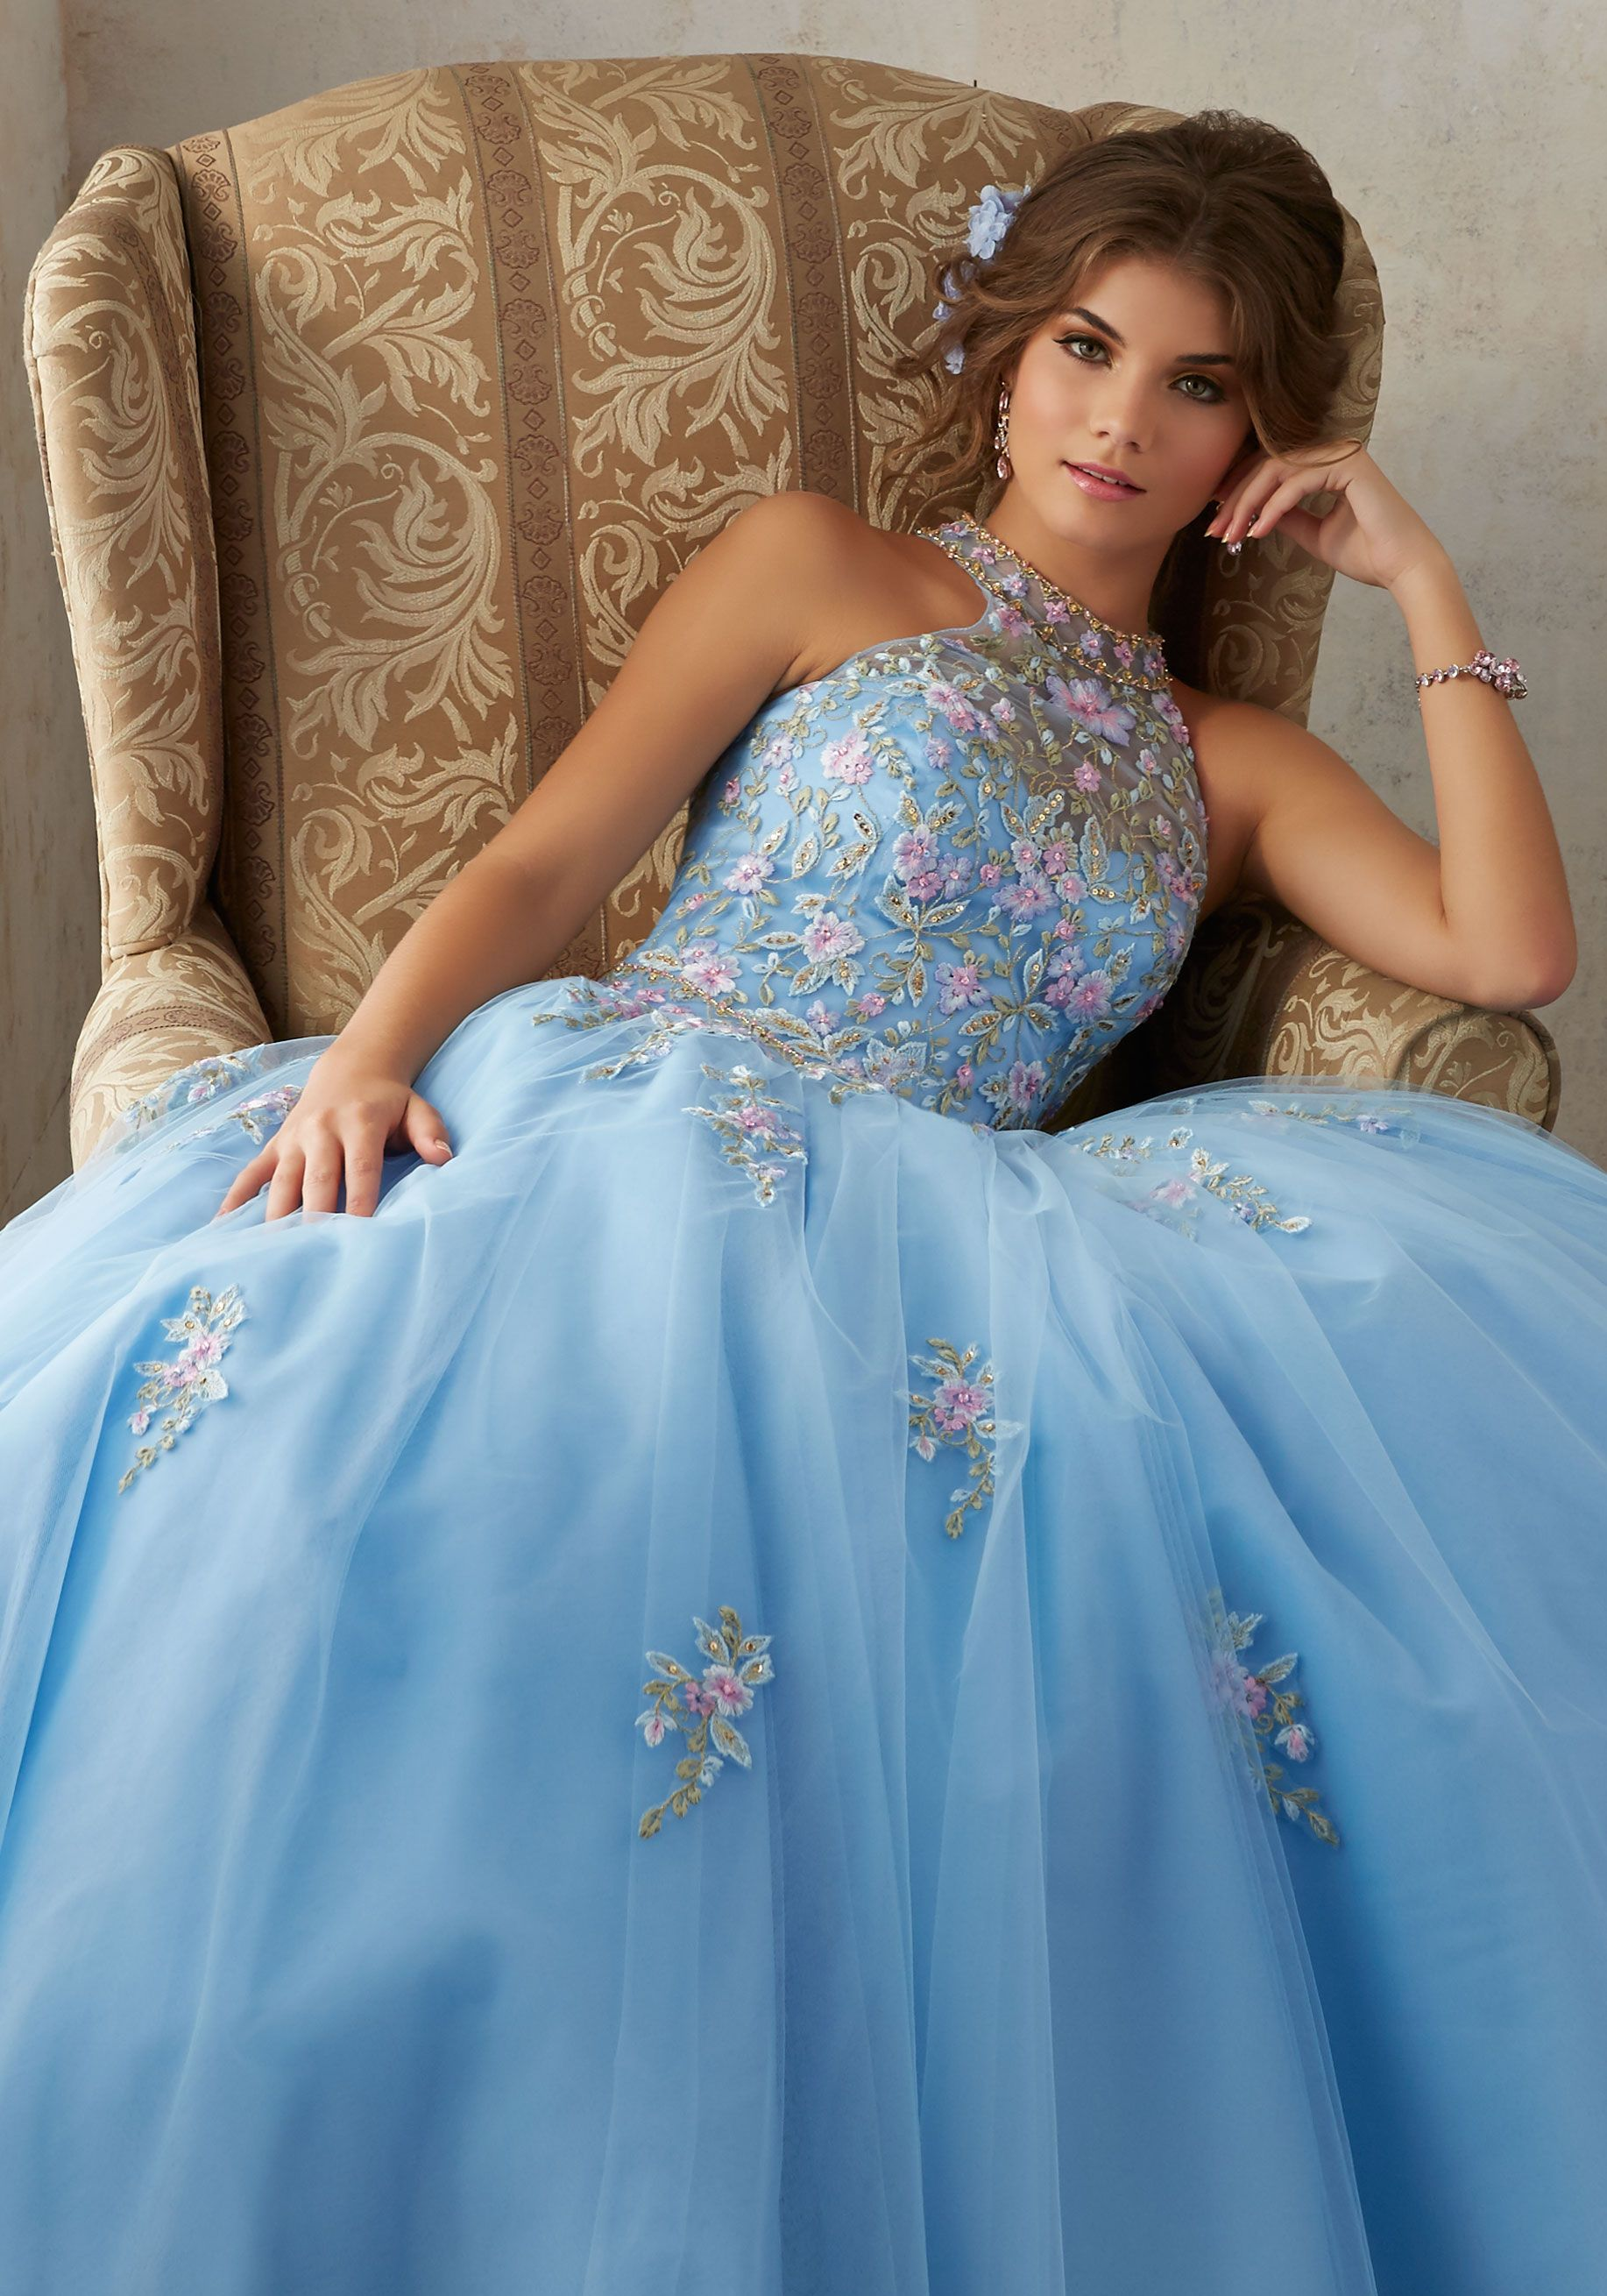 Floral embroidey takes center stage on this tulle quinceañera dress